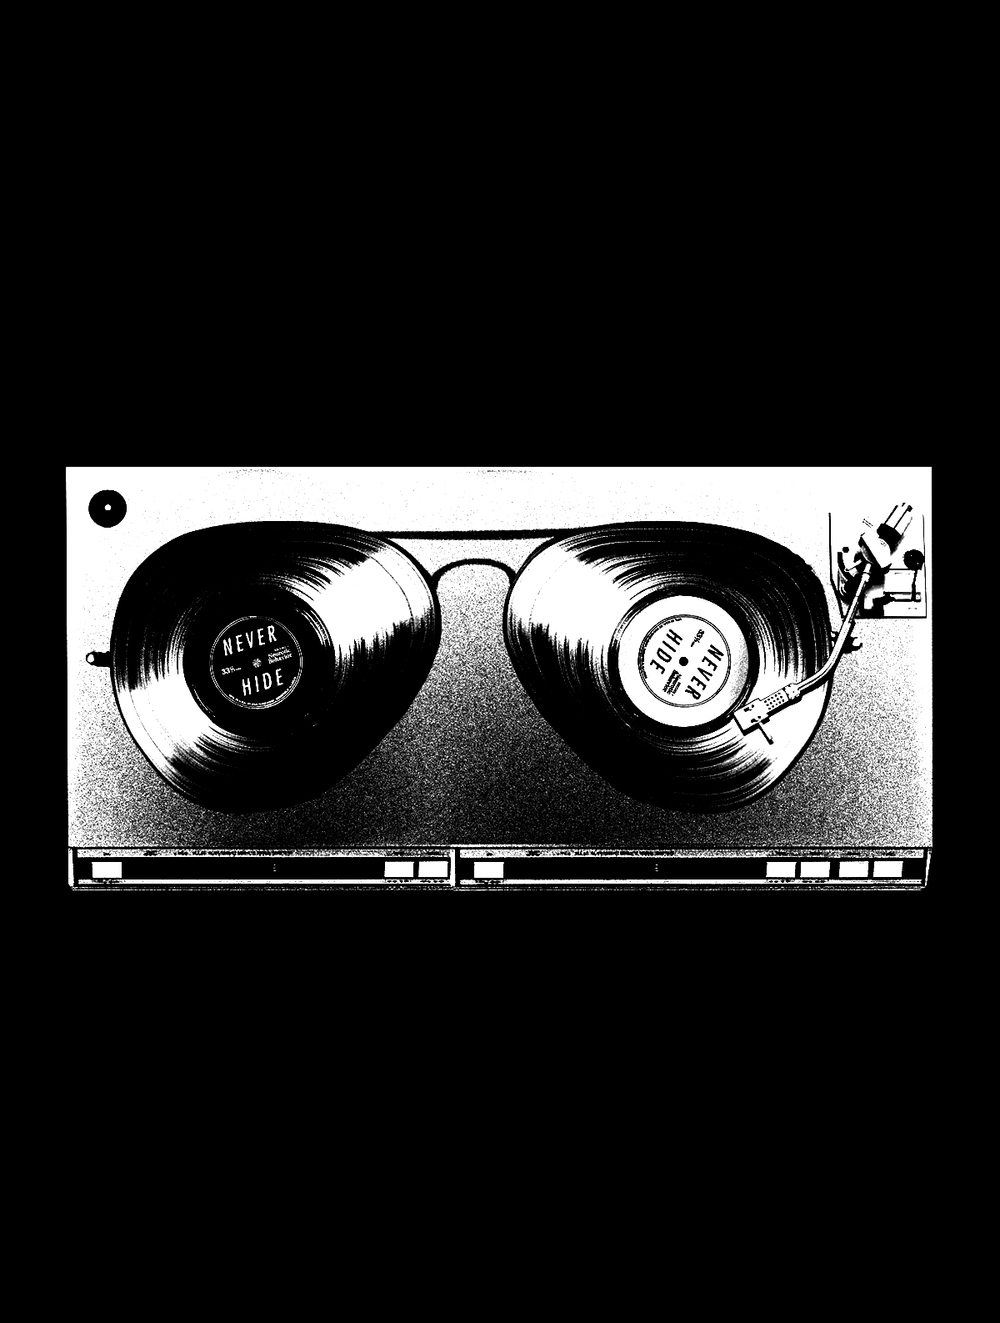 Ray-Ban, Never Hide, Records